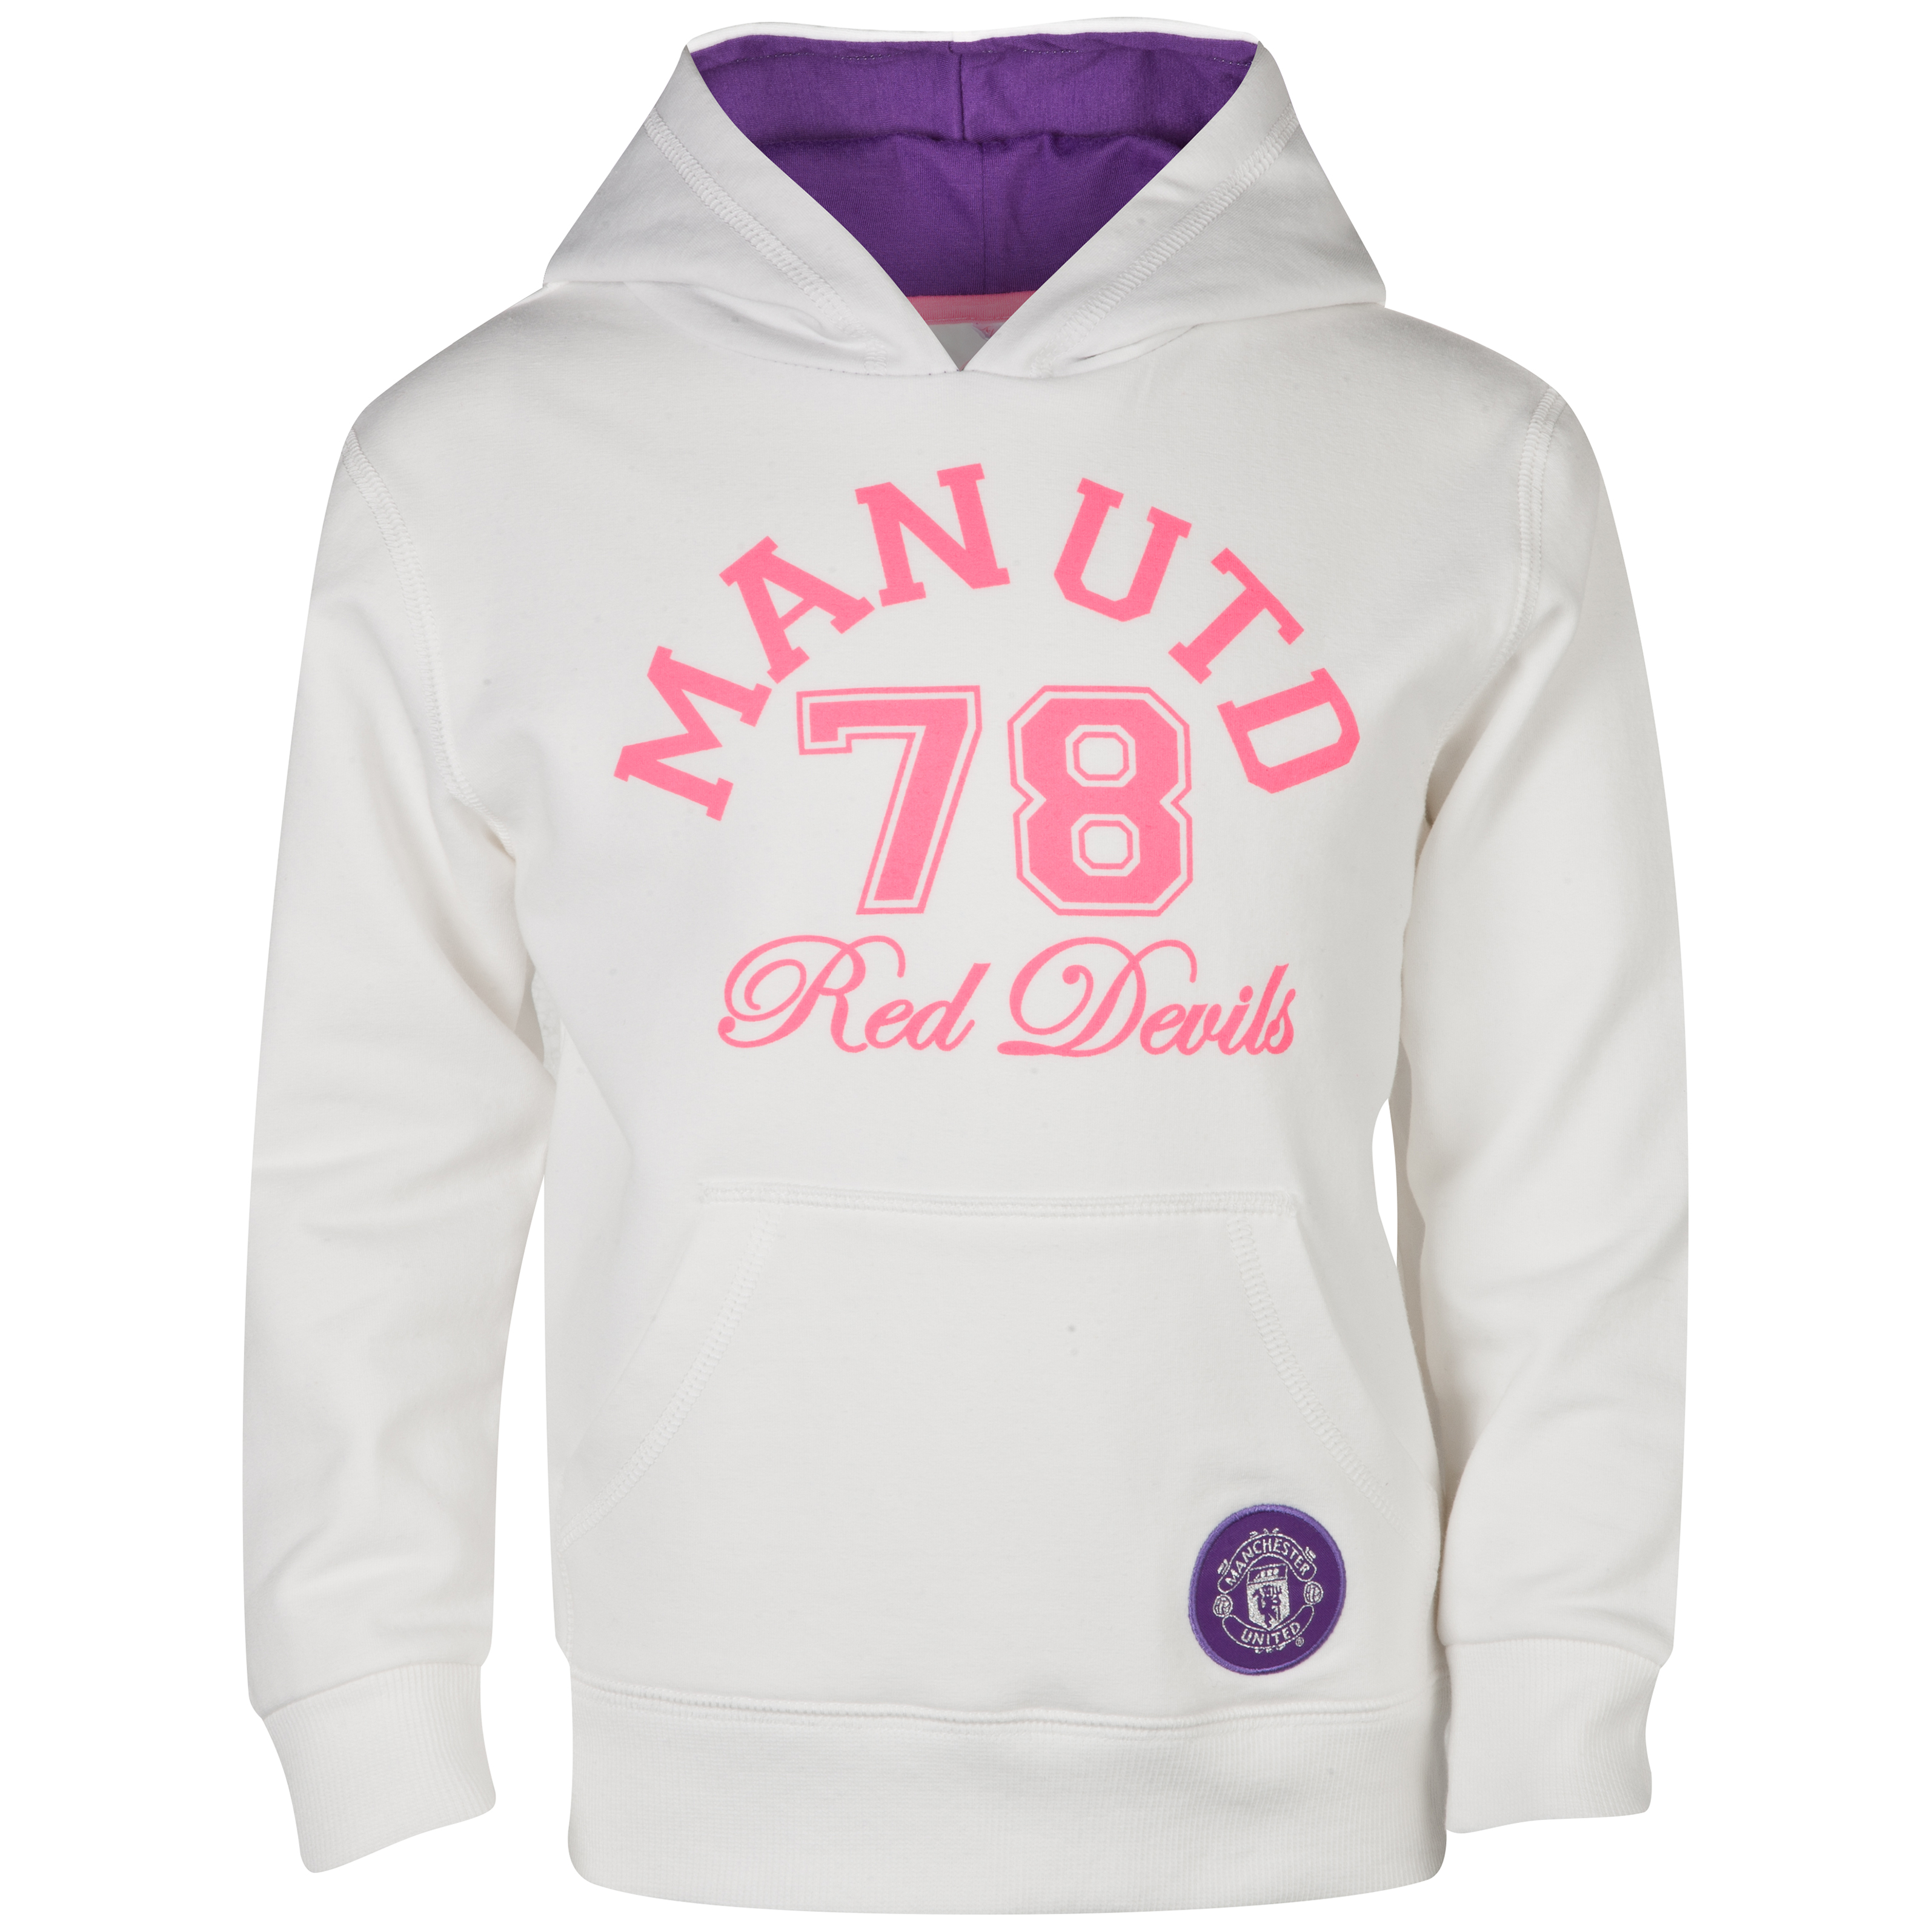 Manchester United 78 Red Devils Hoody - Girls Beige